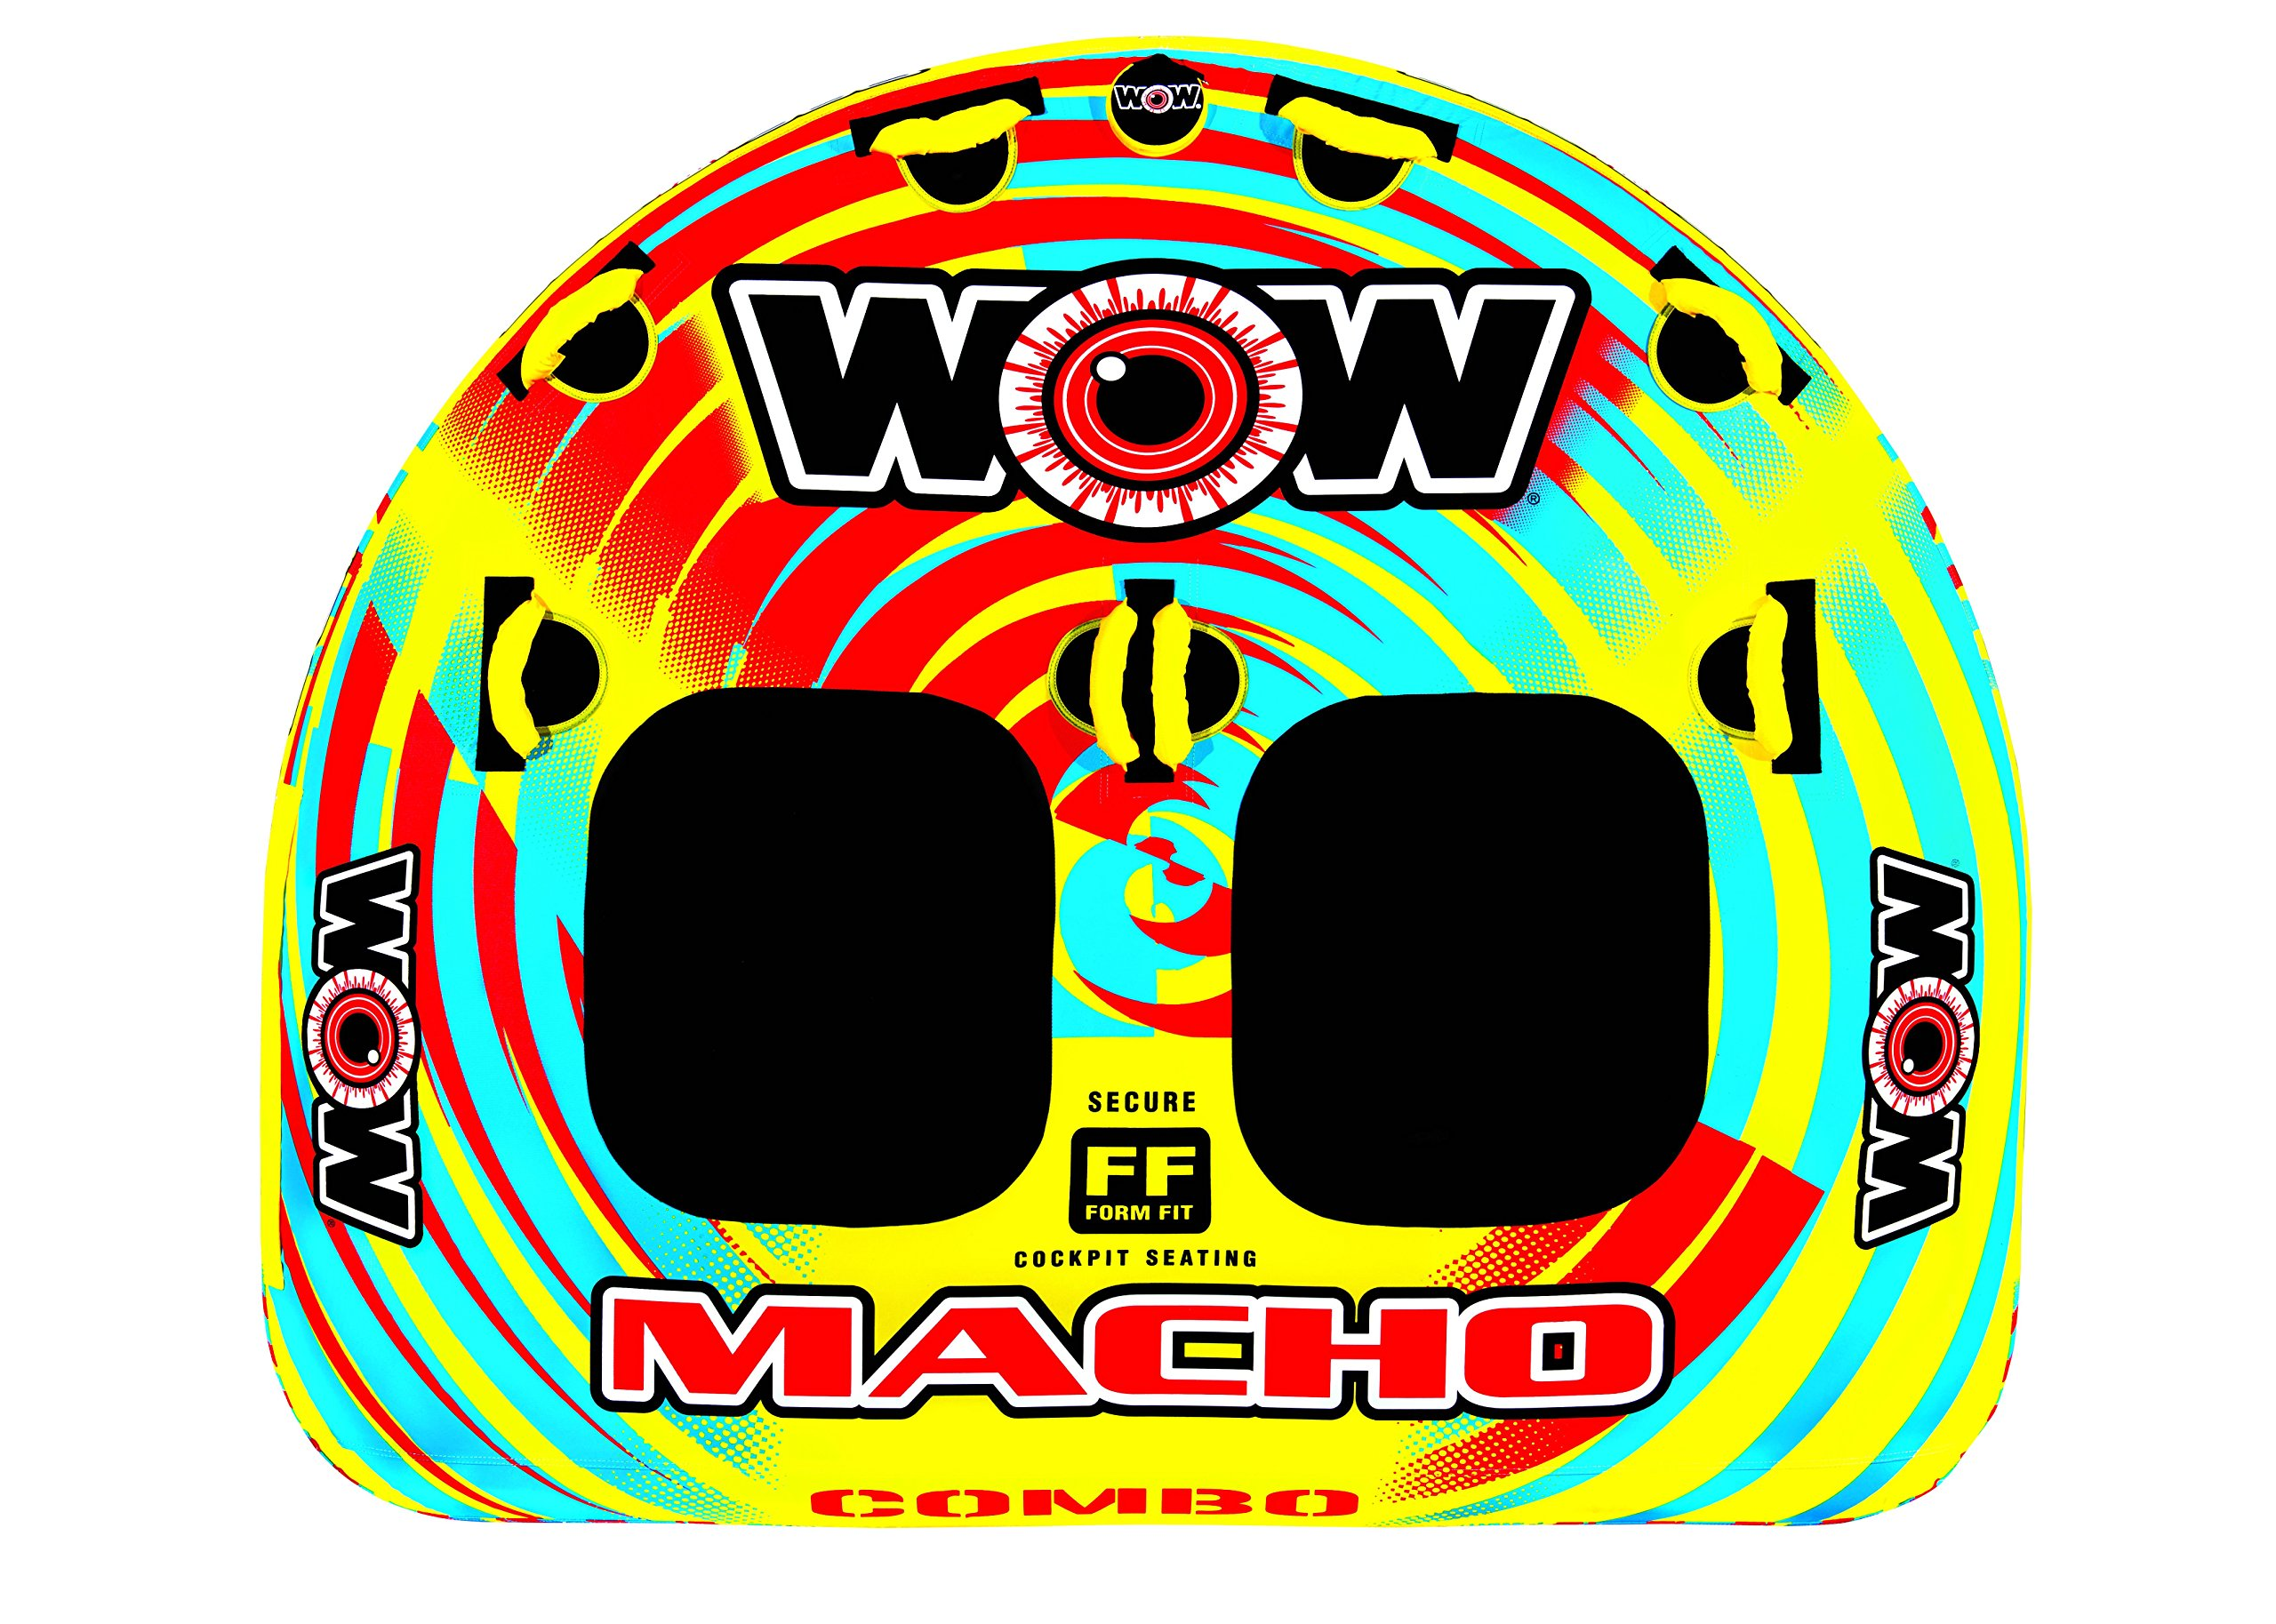 WOW World of Watersports, Macho Towable Tube, Boat Tube, Multiple Riding Positions - Macho Combo 1-2 Person Deck Tube by WOW Sports